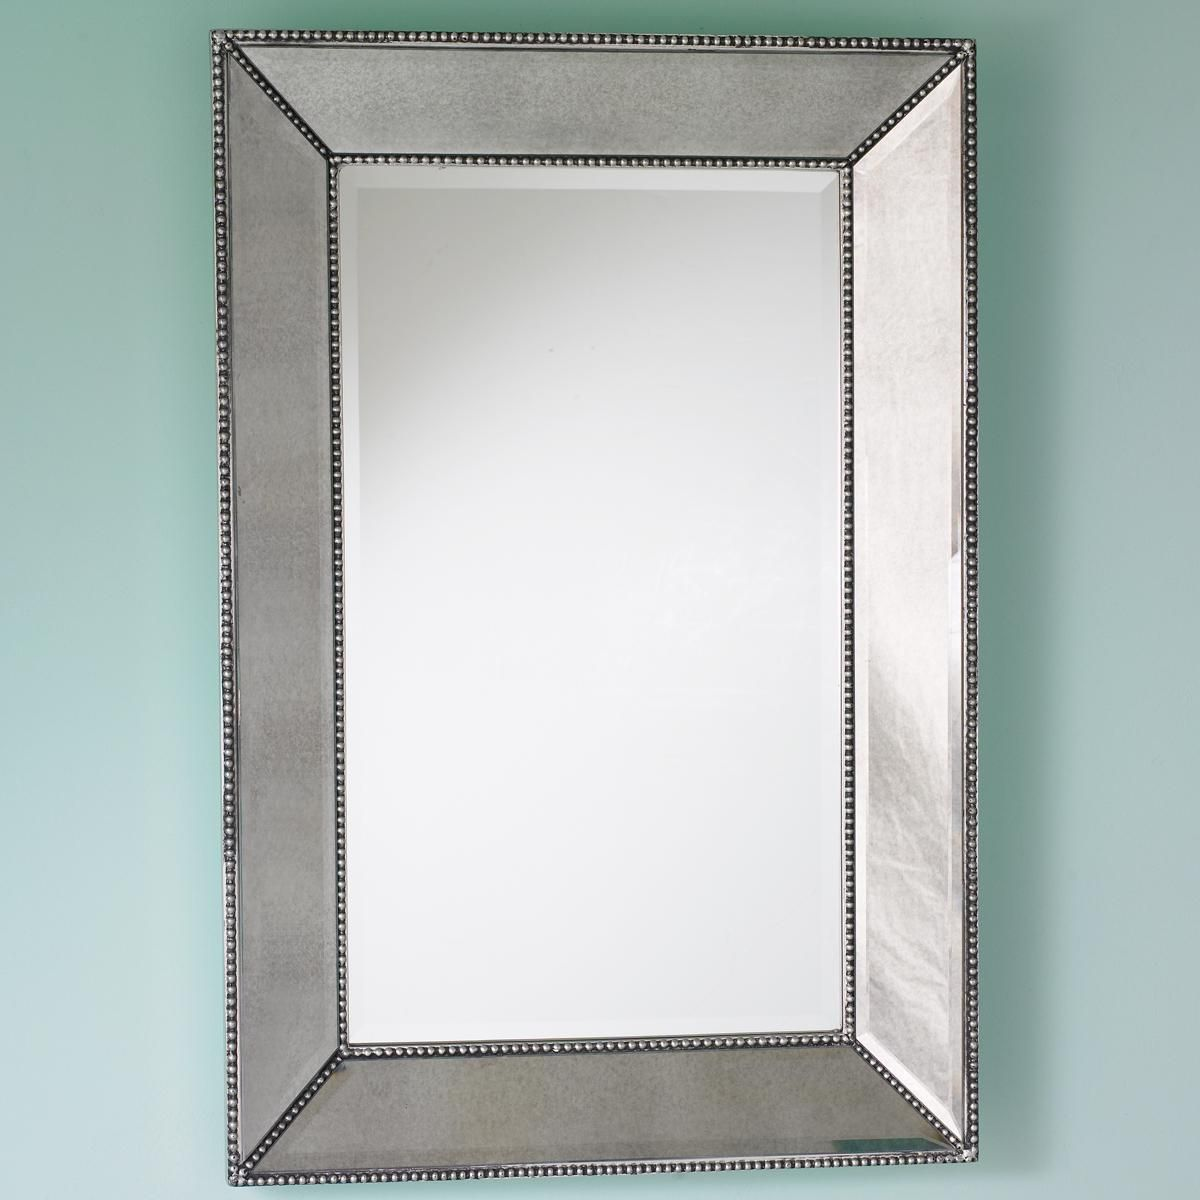 Framed Beveled Bathroom Mirrors beaded frame mirror | frame mirrors, powder room and bath